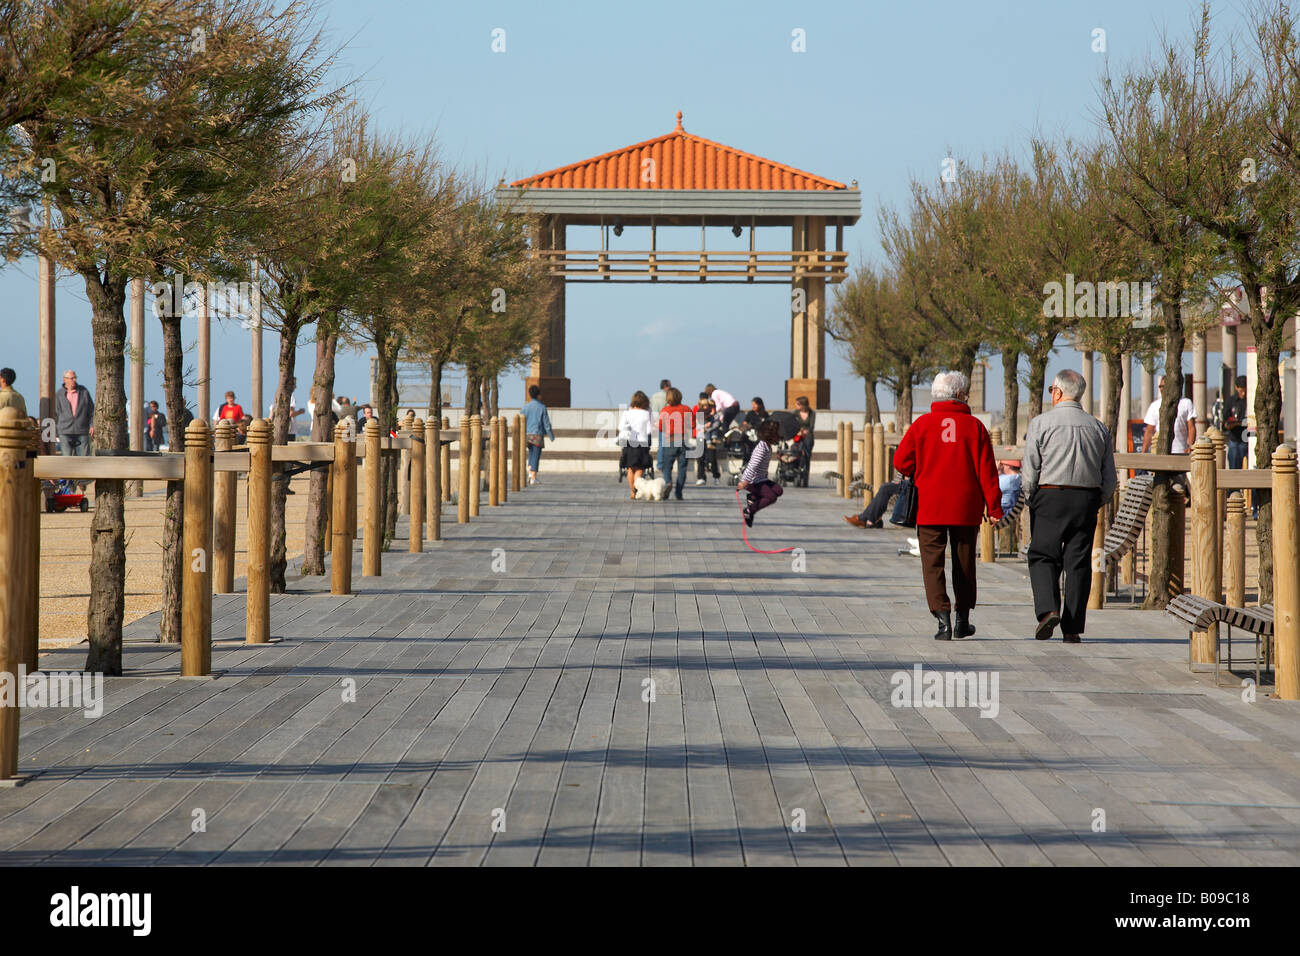 Chambre d Amour promenade in Anglet france - Stock Image